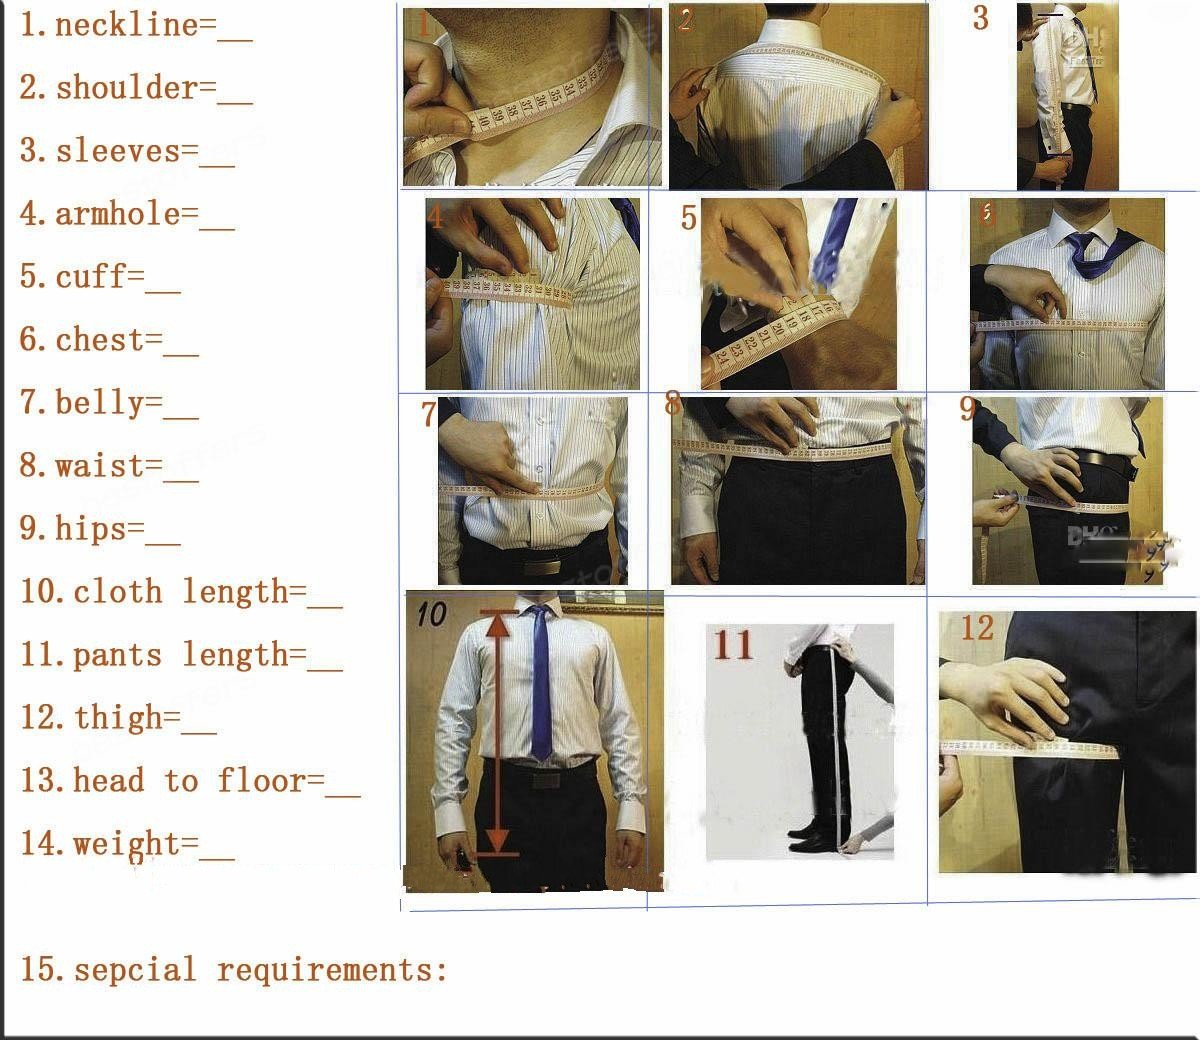 Love Dress Men's Vest Business Suits Three Piece Wear to Work L by Love To Dress (Image #4)